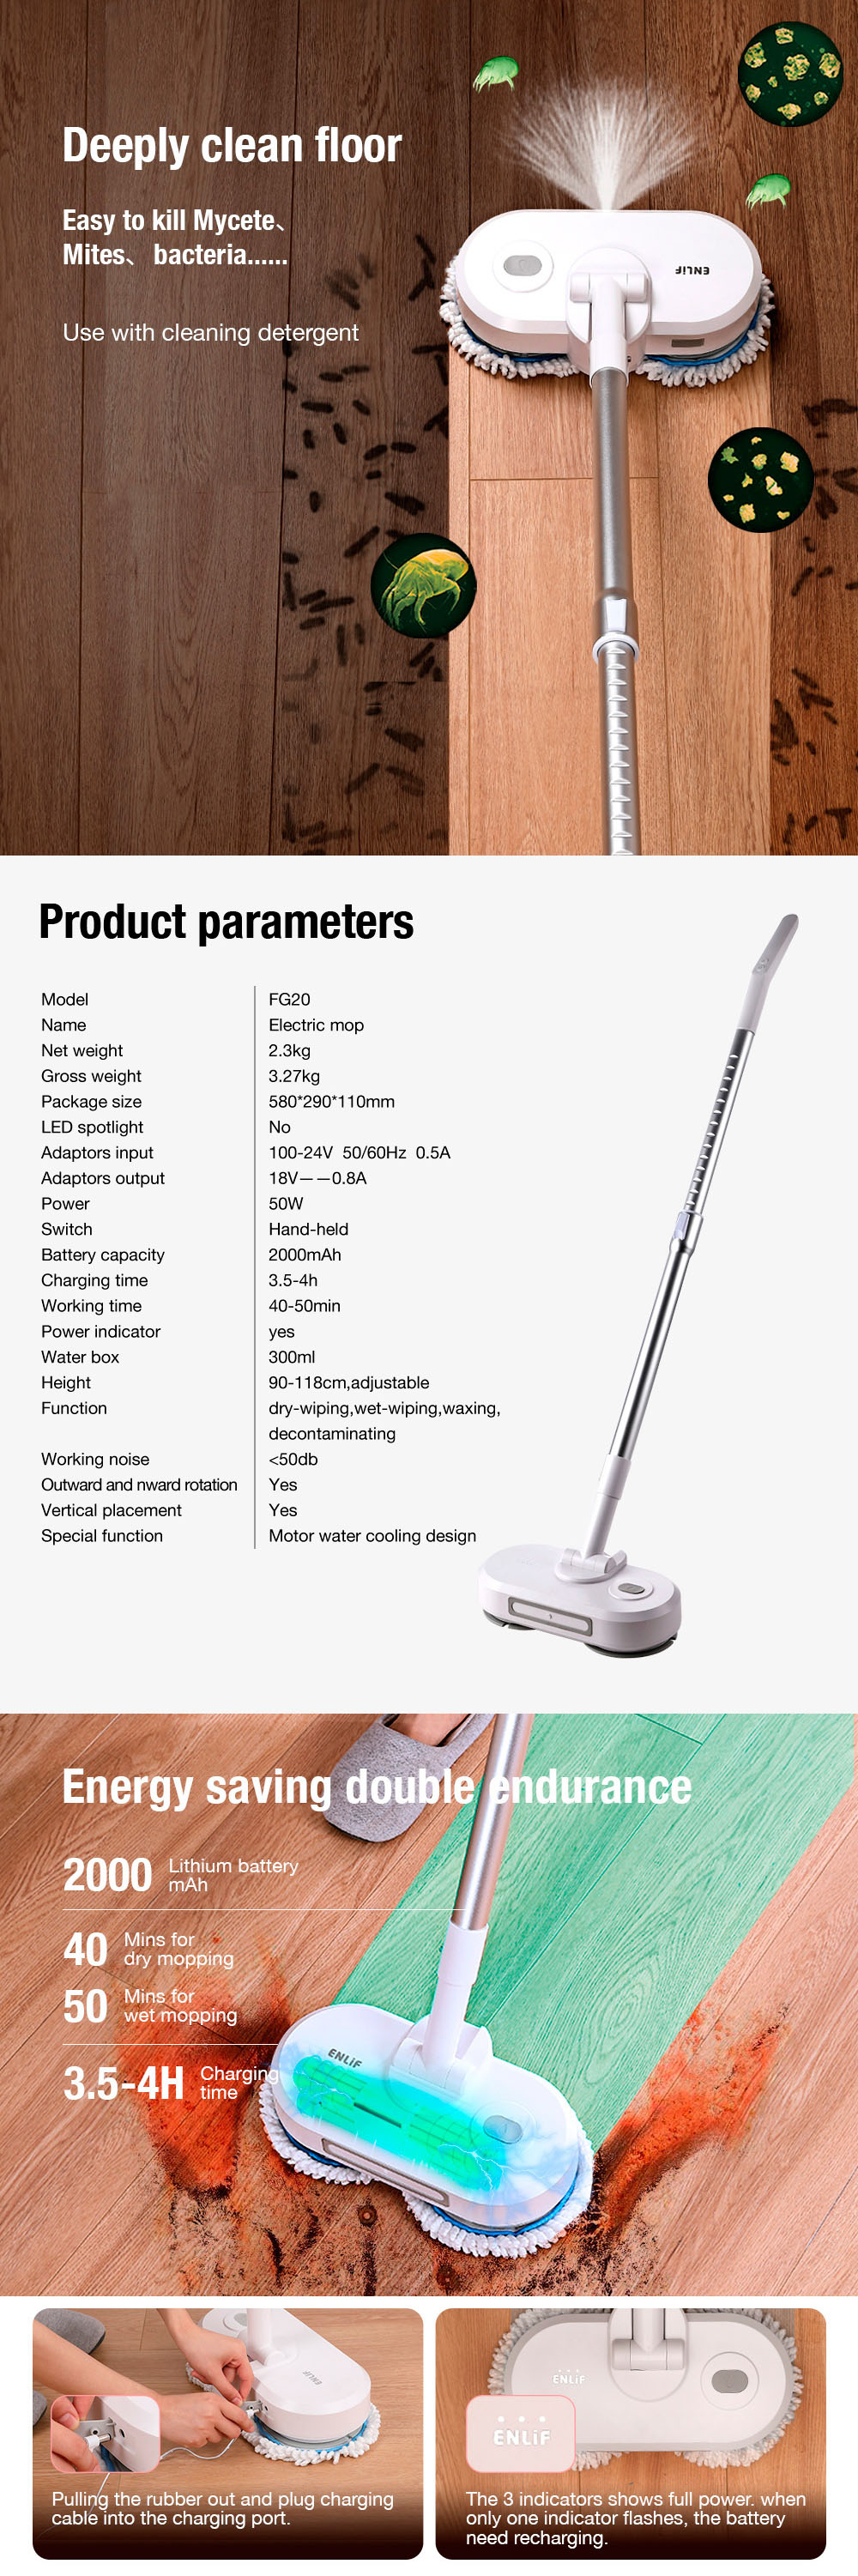 ENLiF FG20 Electric Wireless Spin Mop Disinfection Vacuum Cleaner Cordless Rechargeable Lightweight Cleaner Electronic Floor Sweeper and Mop Adjustable Floor Waxing